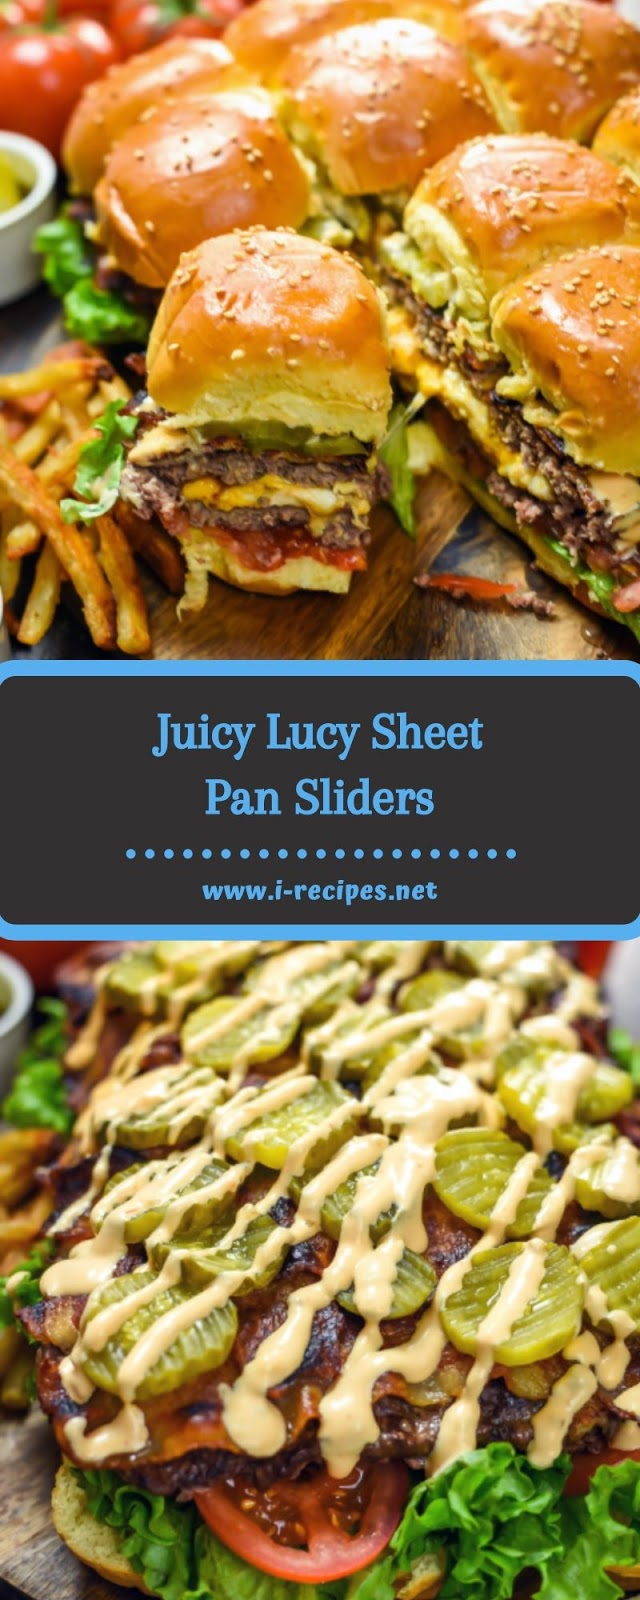 Juicy Lucy Sheet Pan Sliders